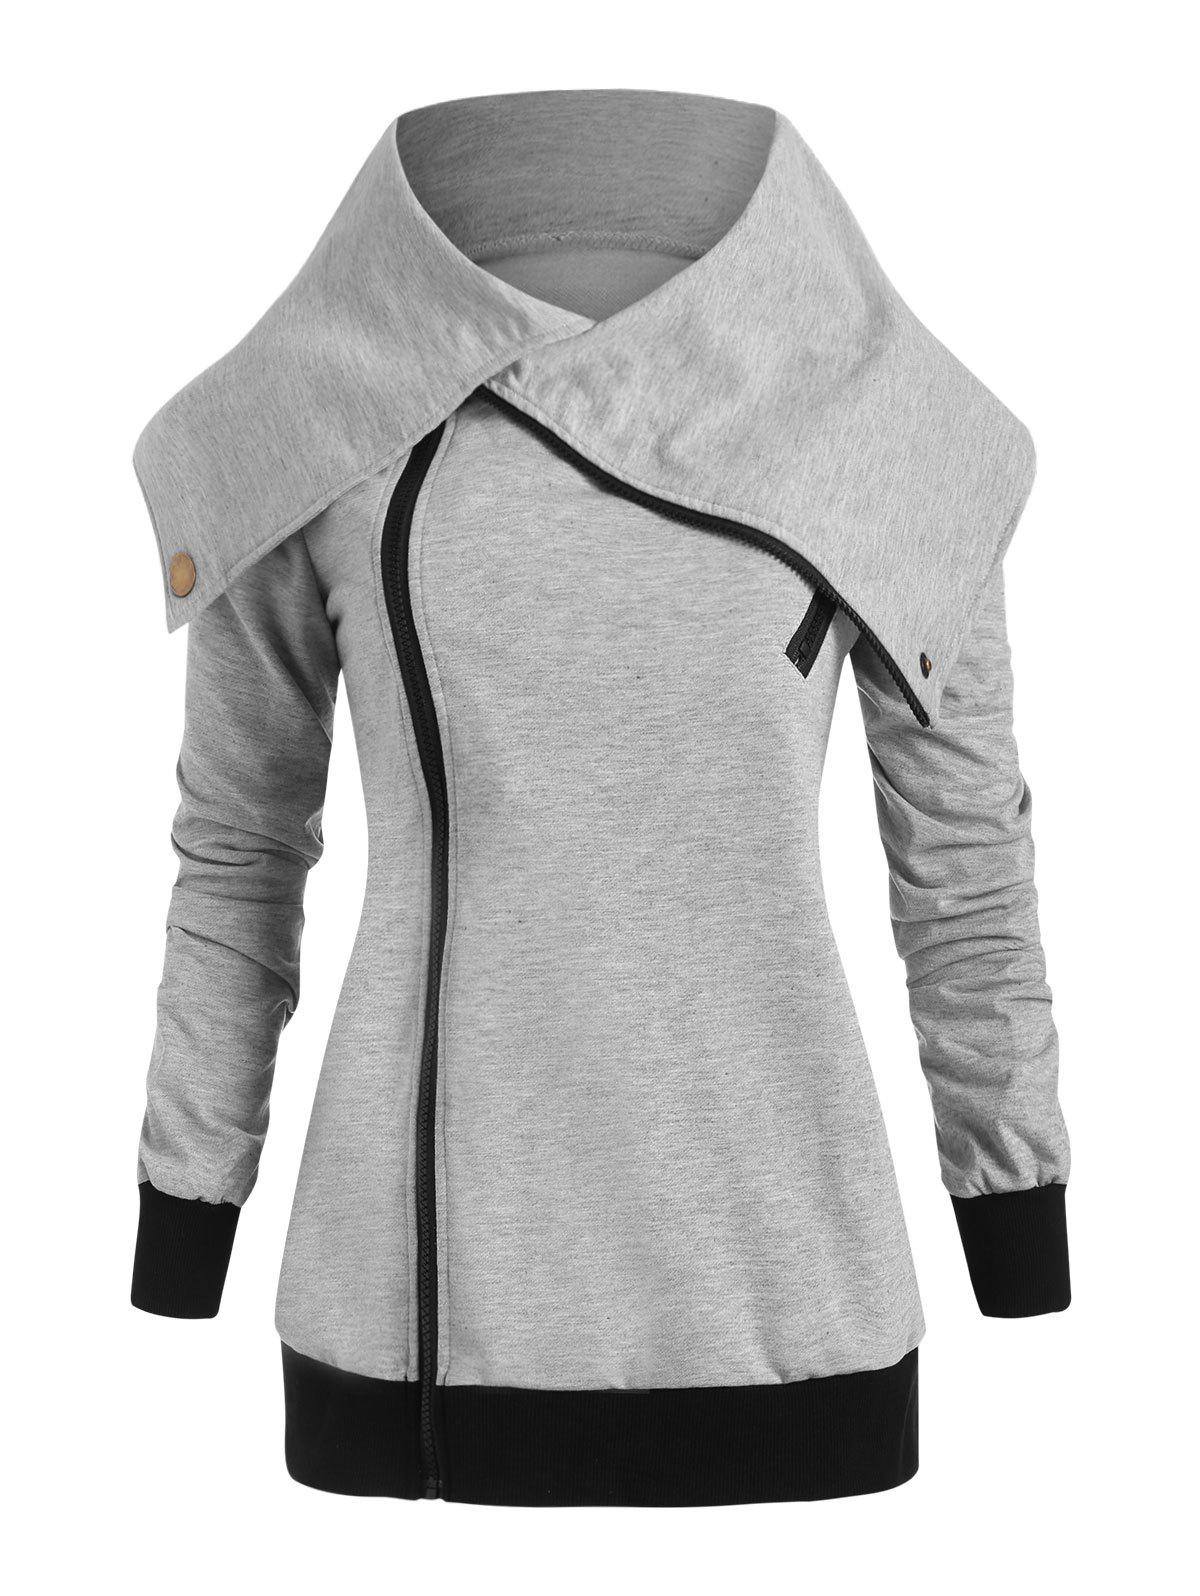 Plus Size Side Zipper Jacket - GRAY 2X